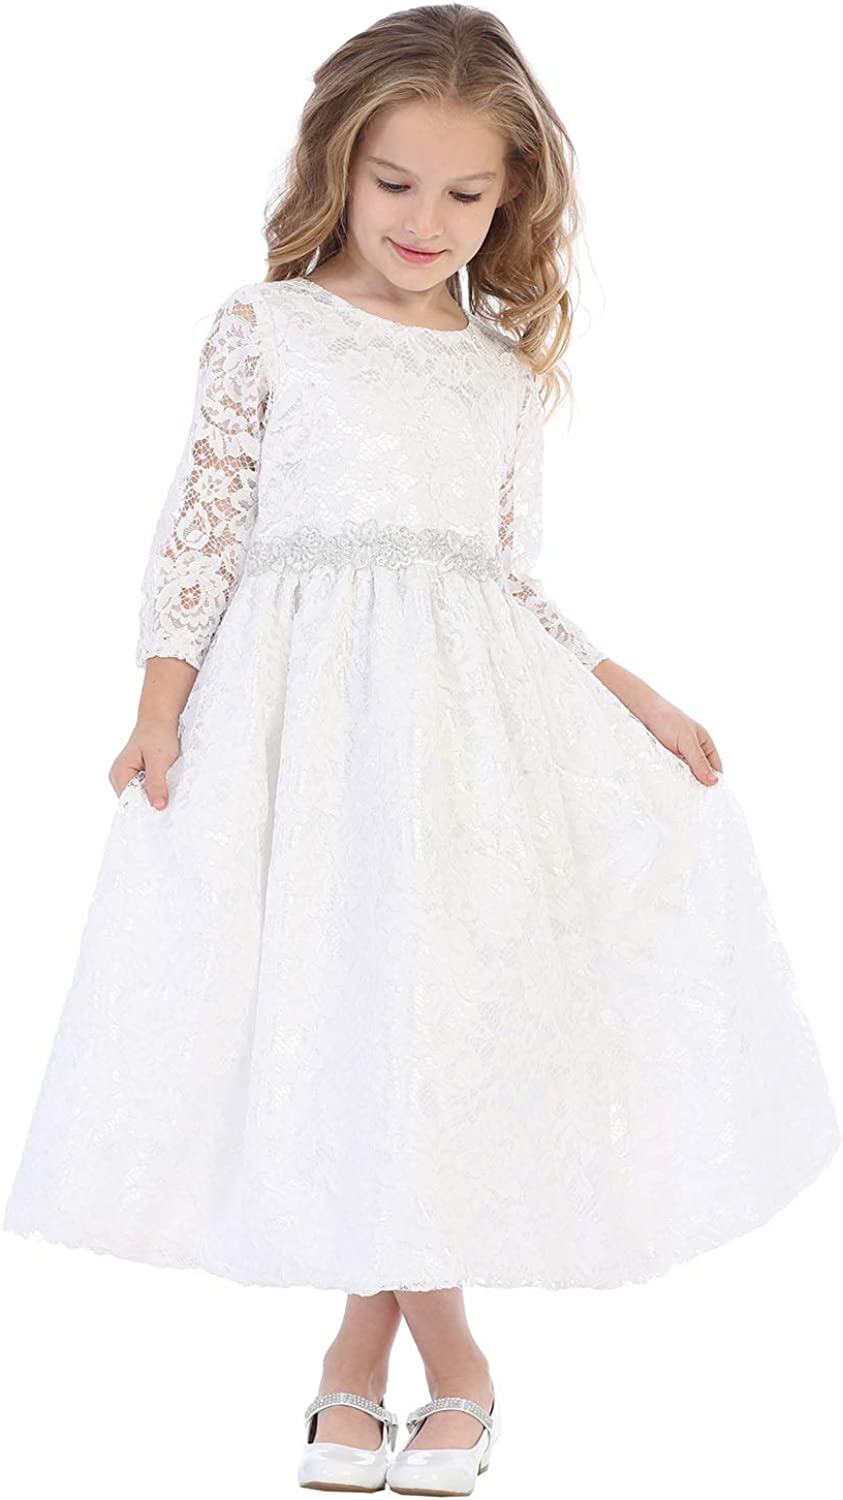 SWEA Pea Fixed price for sale Lilli White First Communion with Gir Dresses for Lace Inventory cleanup selling sale